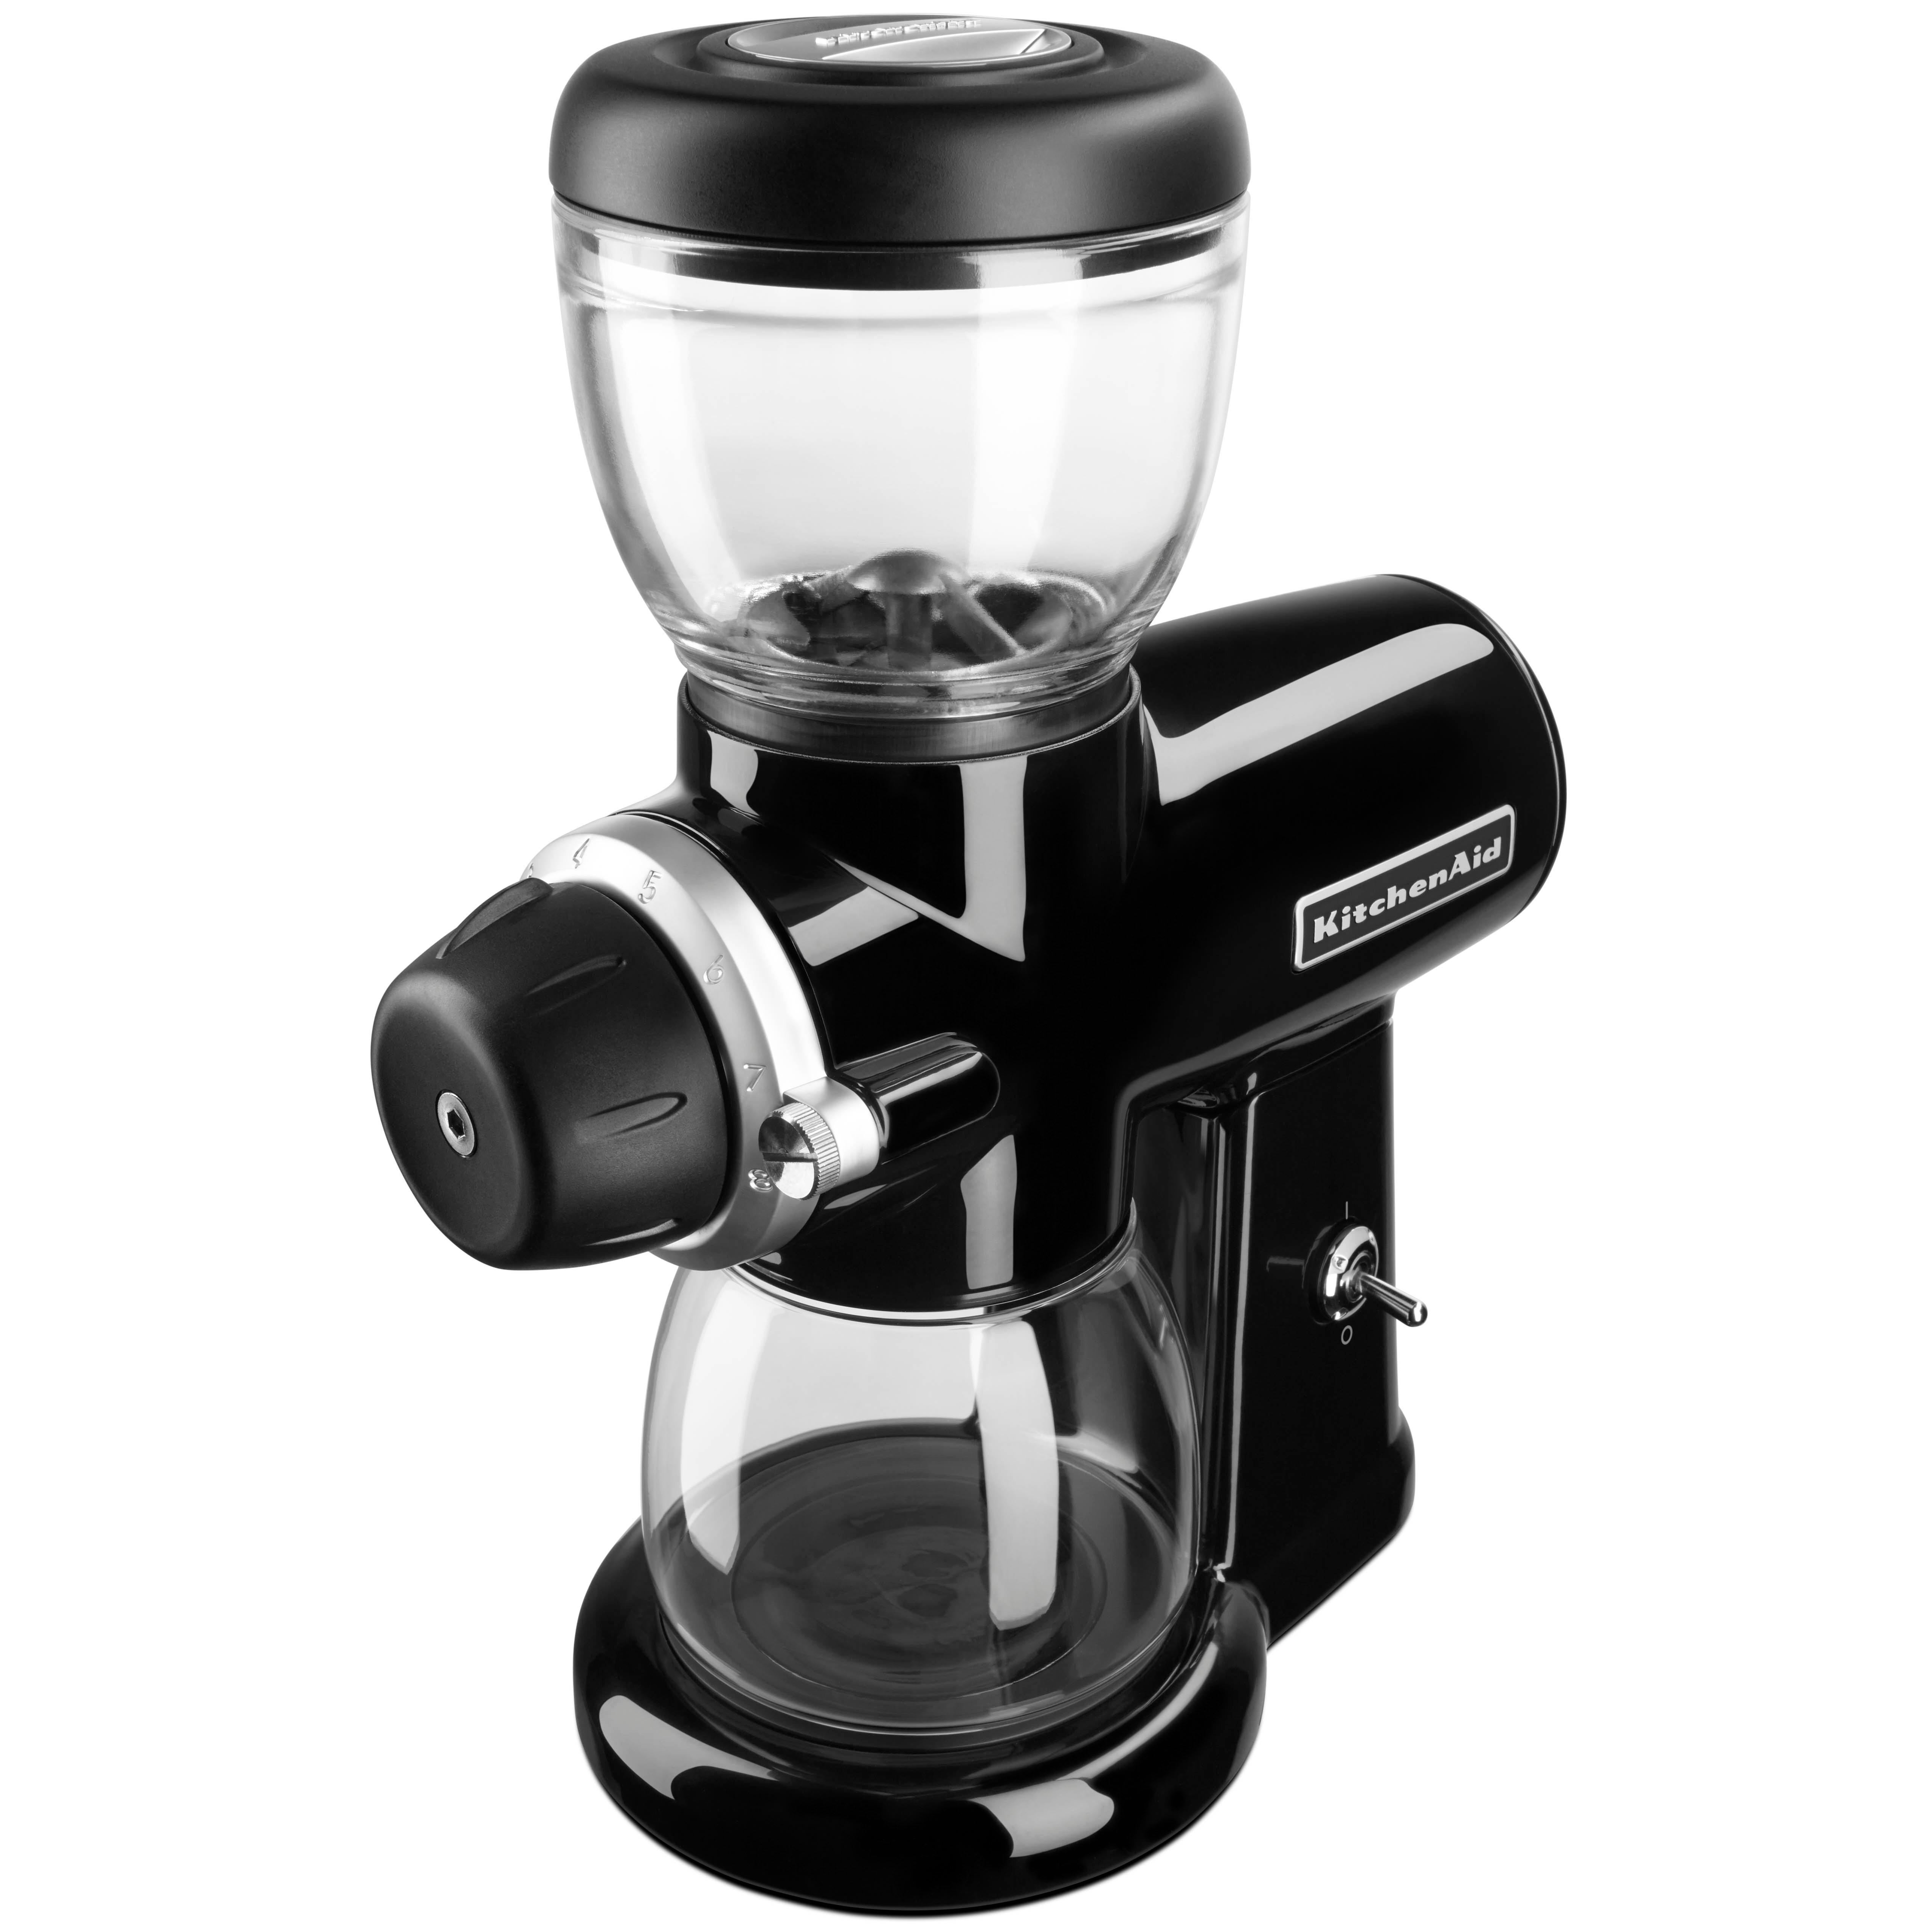 Amazon.com: KitchenAid KCG0702CU Burr Coffee Grinder, Contour Silver on almond grinder, disc sander and grinder, mazzer grinder, super chef grinder, kyocera grinder, villaware grinder, bunn grinder, magic bullet grinder, krups grinder, mixer grinder, hitachi grinder, bosch grinder, waring grinder, biro grinder, westinghouse grinder, butcher boy grinder, ikea grinder, sears grinder, breville grinder, side grinder,